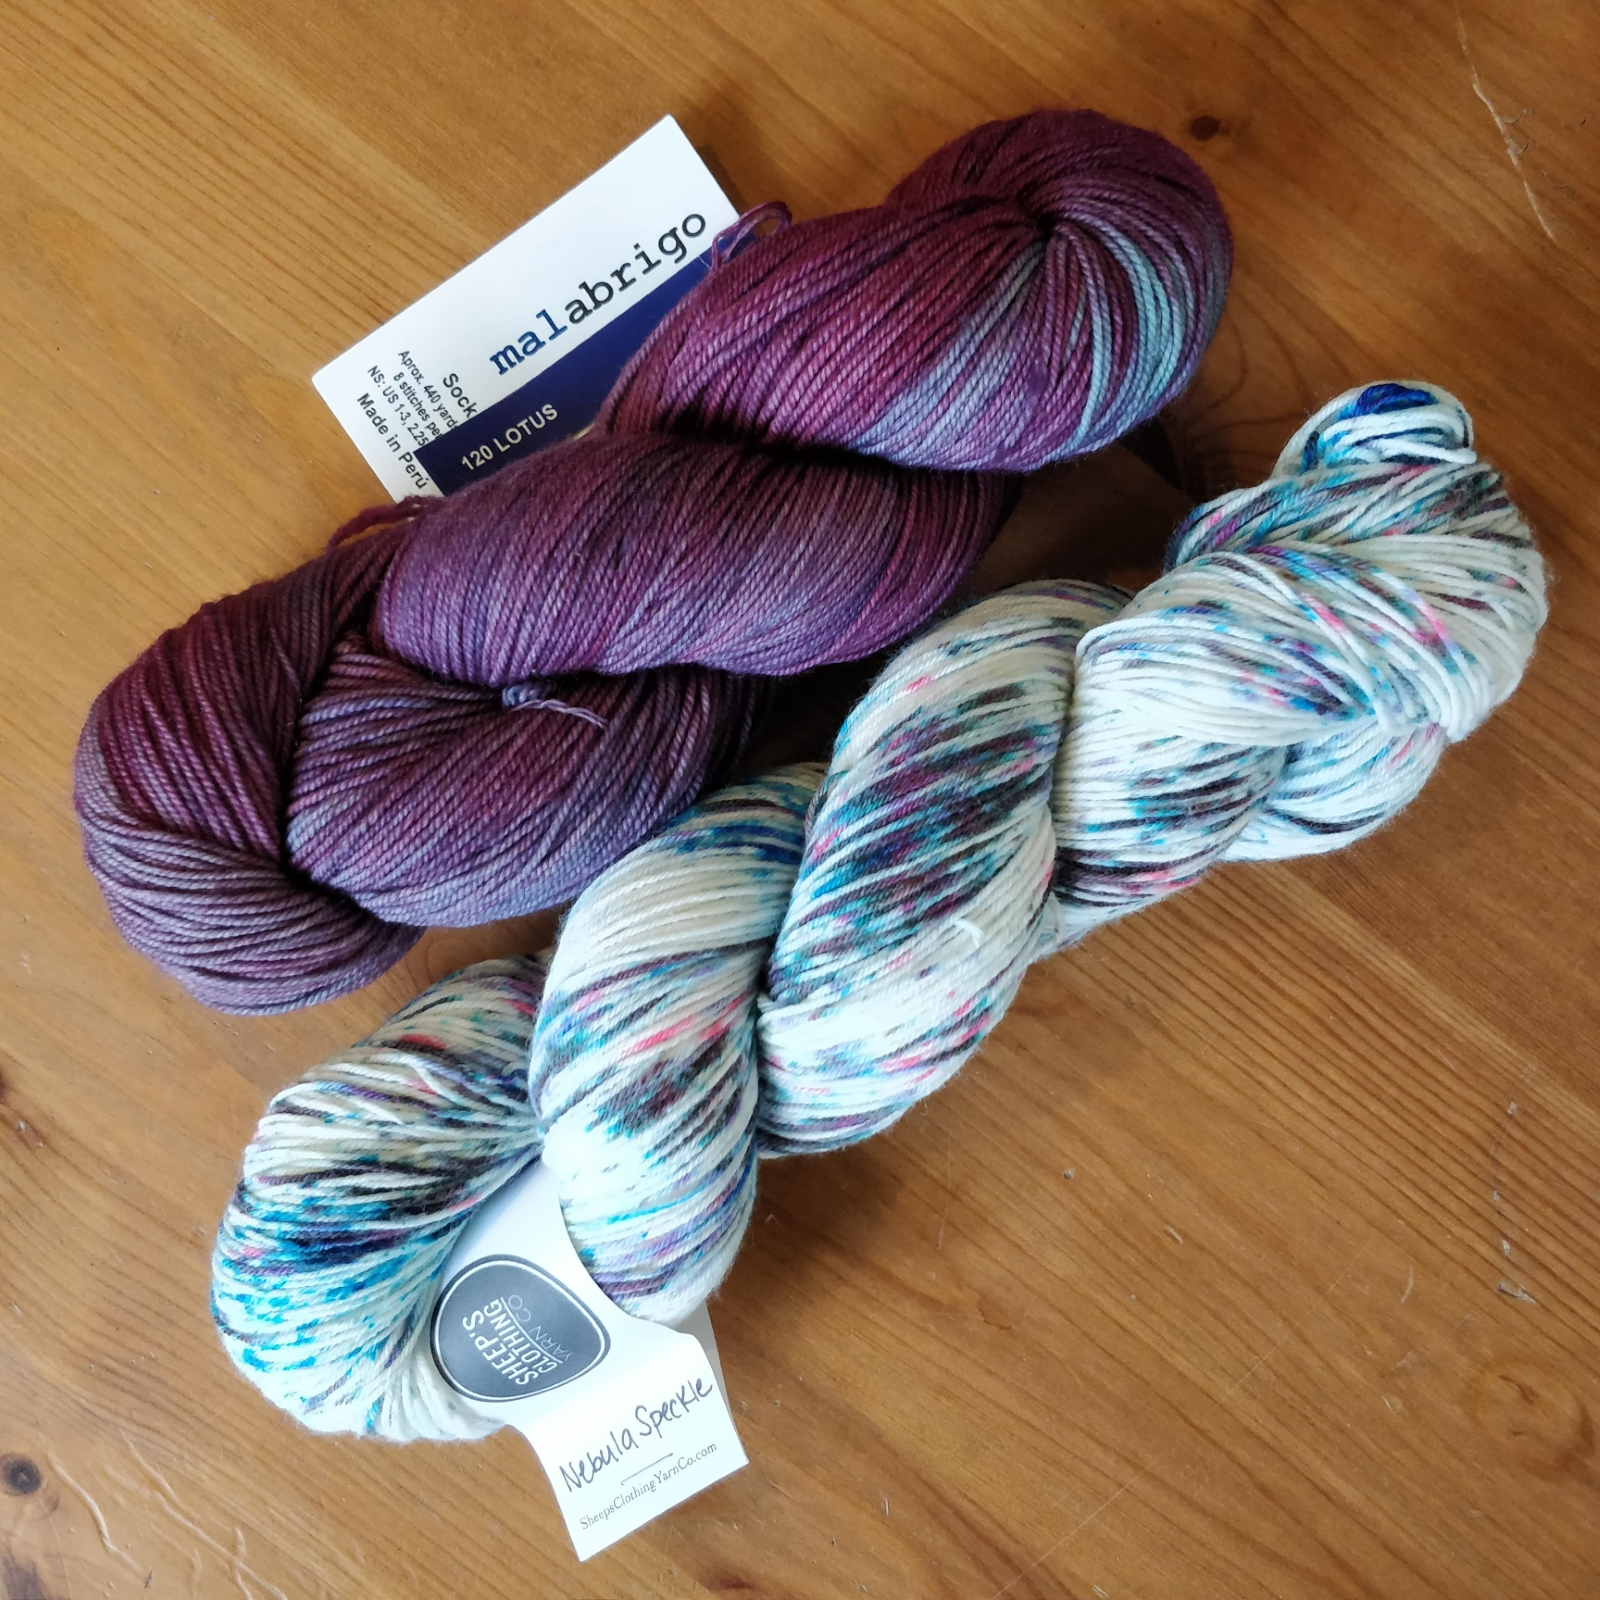 Two skeins of sock yarn - one dark purple with a tinge of cyan, the other mostly white with purple/blue/pink speckles